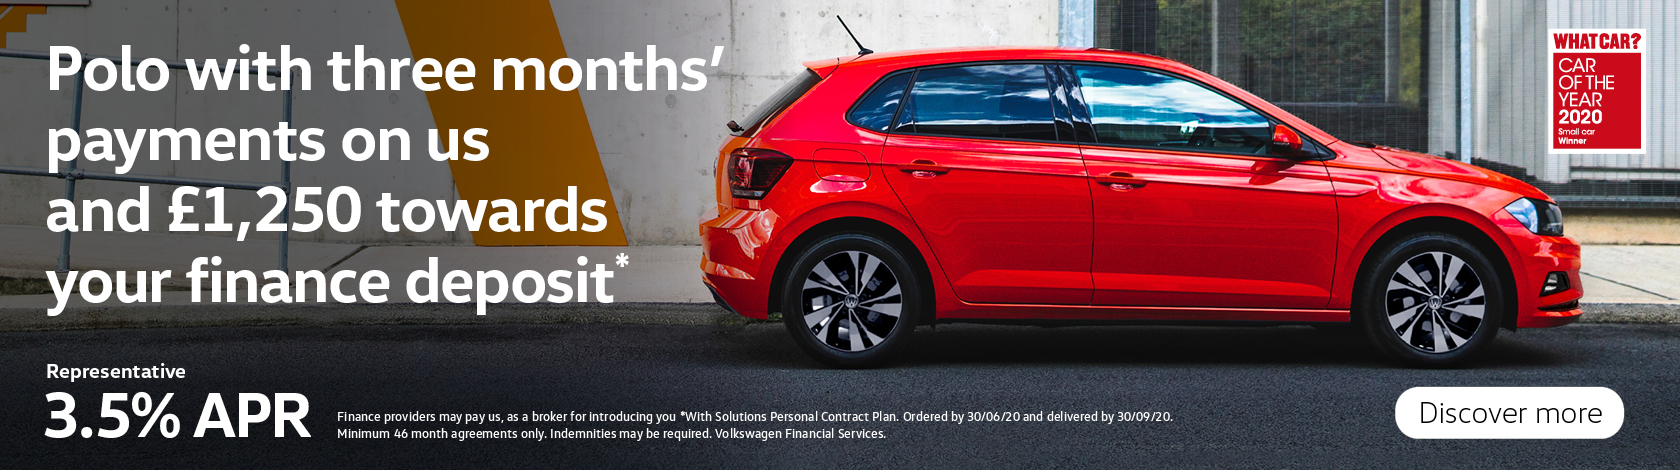 Polo Match 3.5% APR £1,250 Deposit Contribution